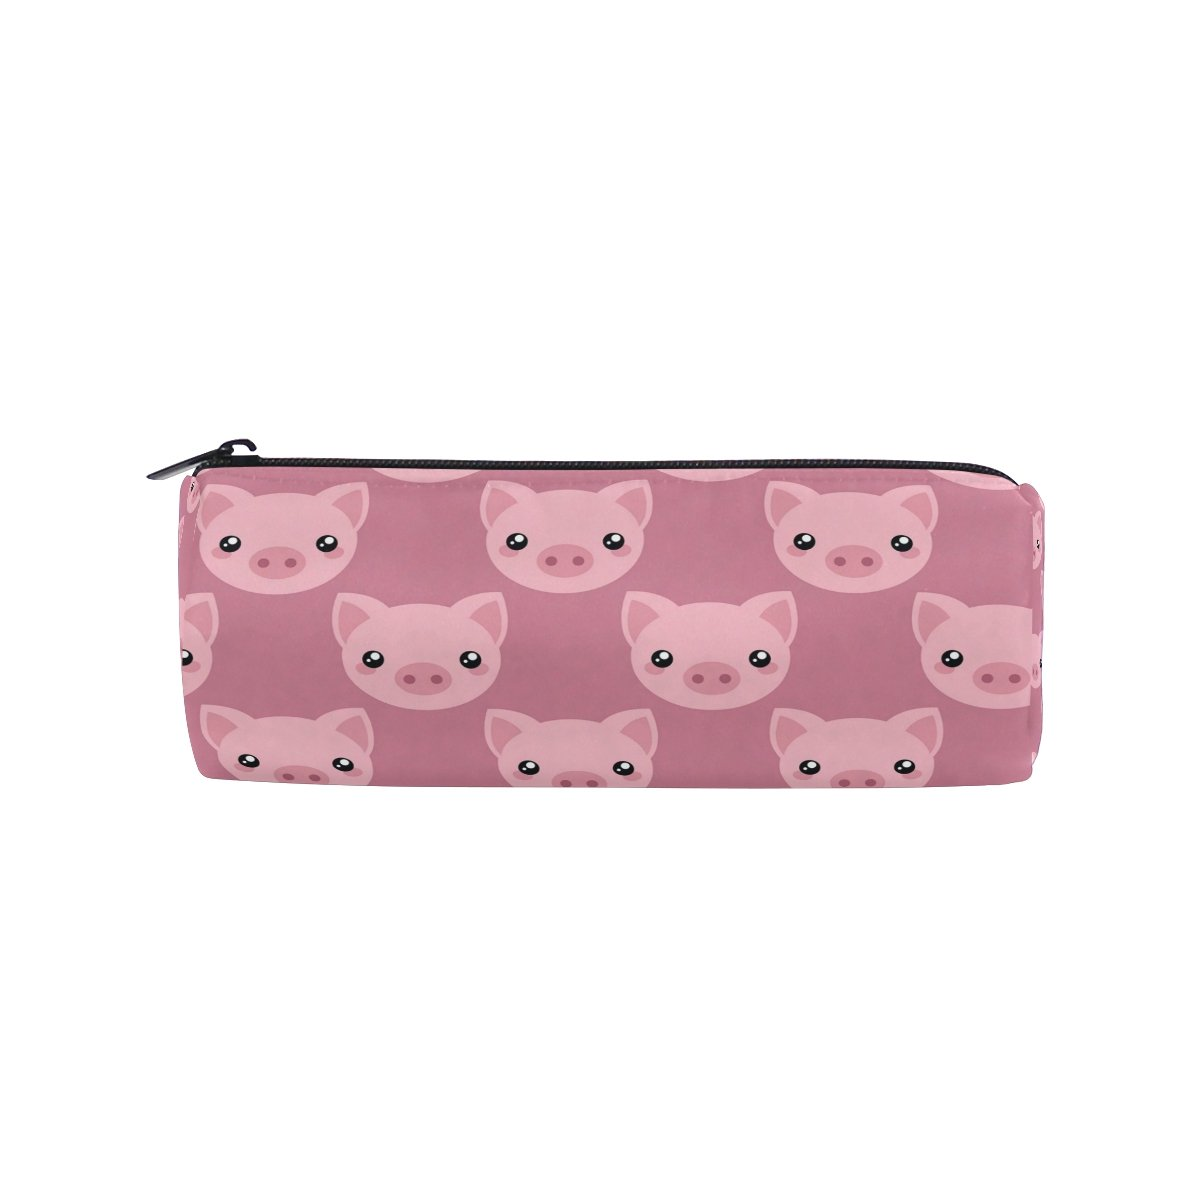 ALAZA Pink Cartoon Pig Face Animal Pencil Pen Case Pouch Bag with Zipper for Girls Kids School Student Stationery Office Supplies by ALAZA (Image #1)